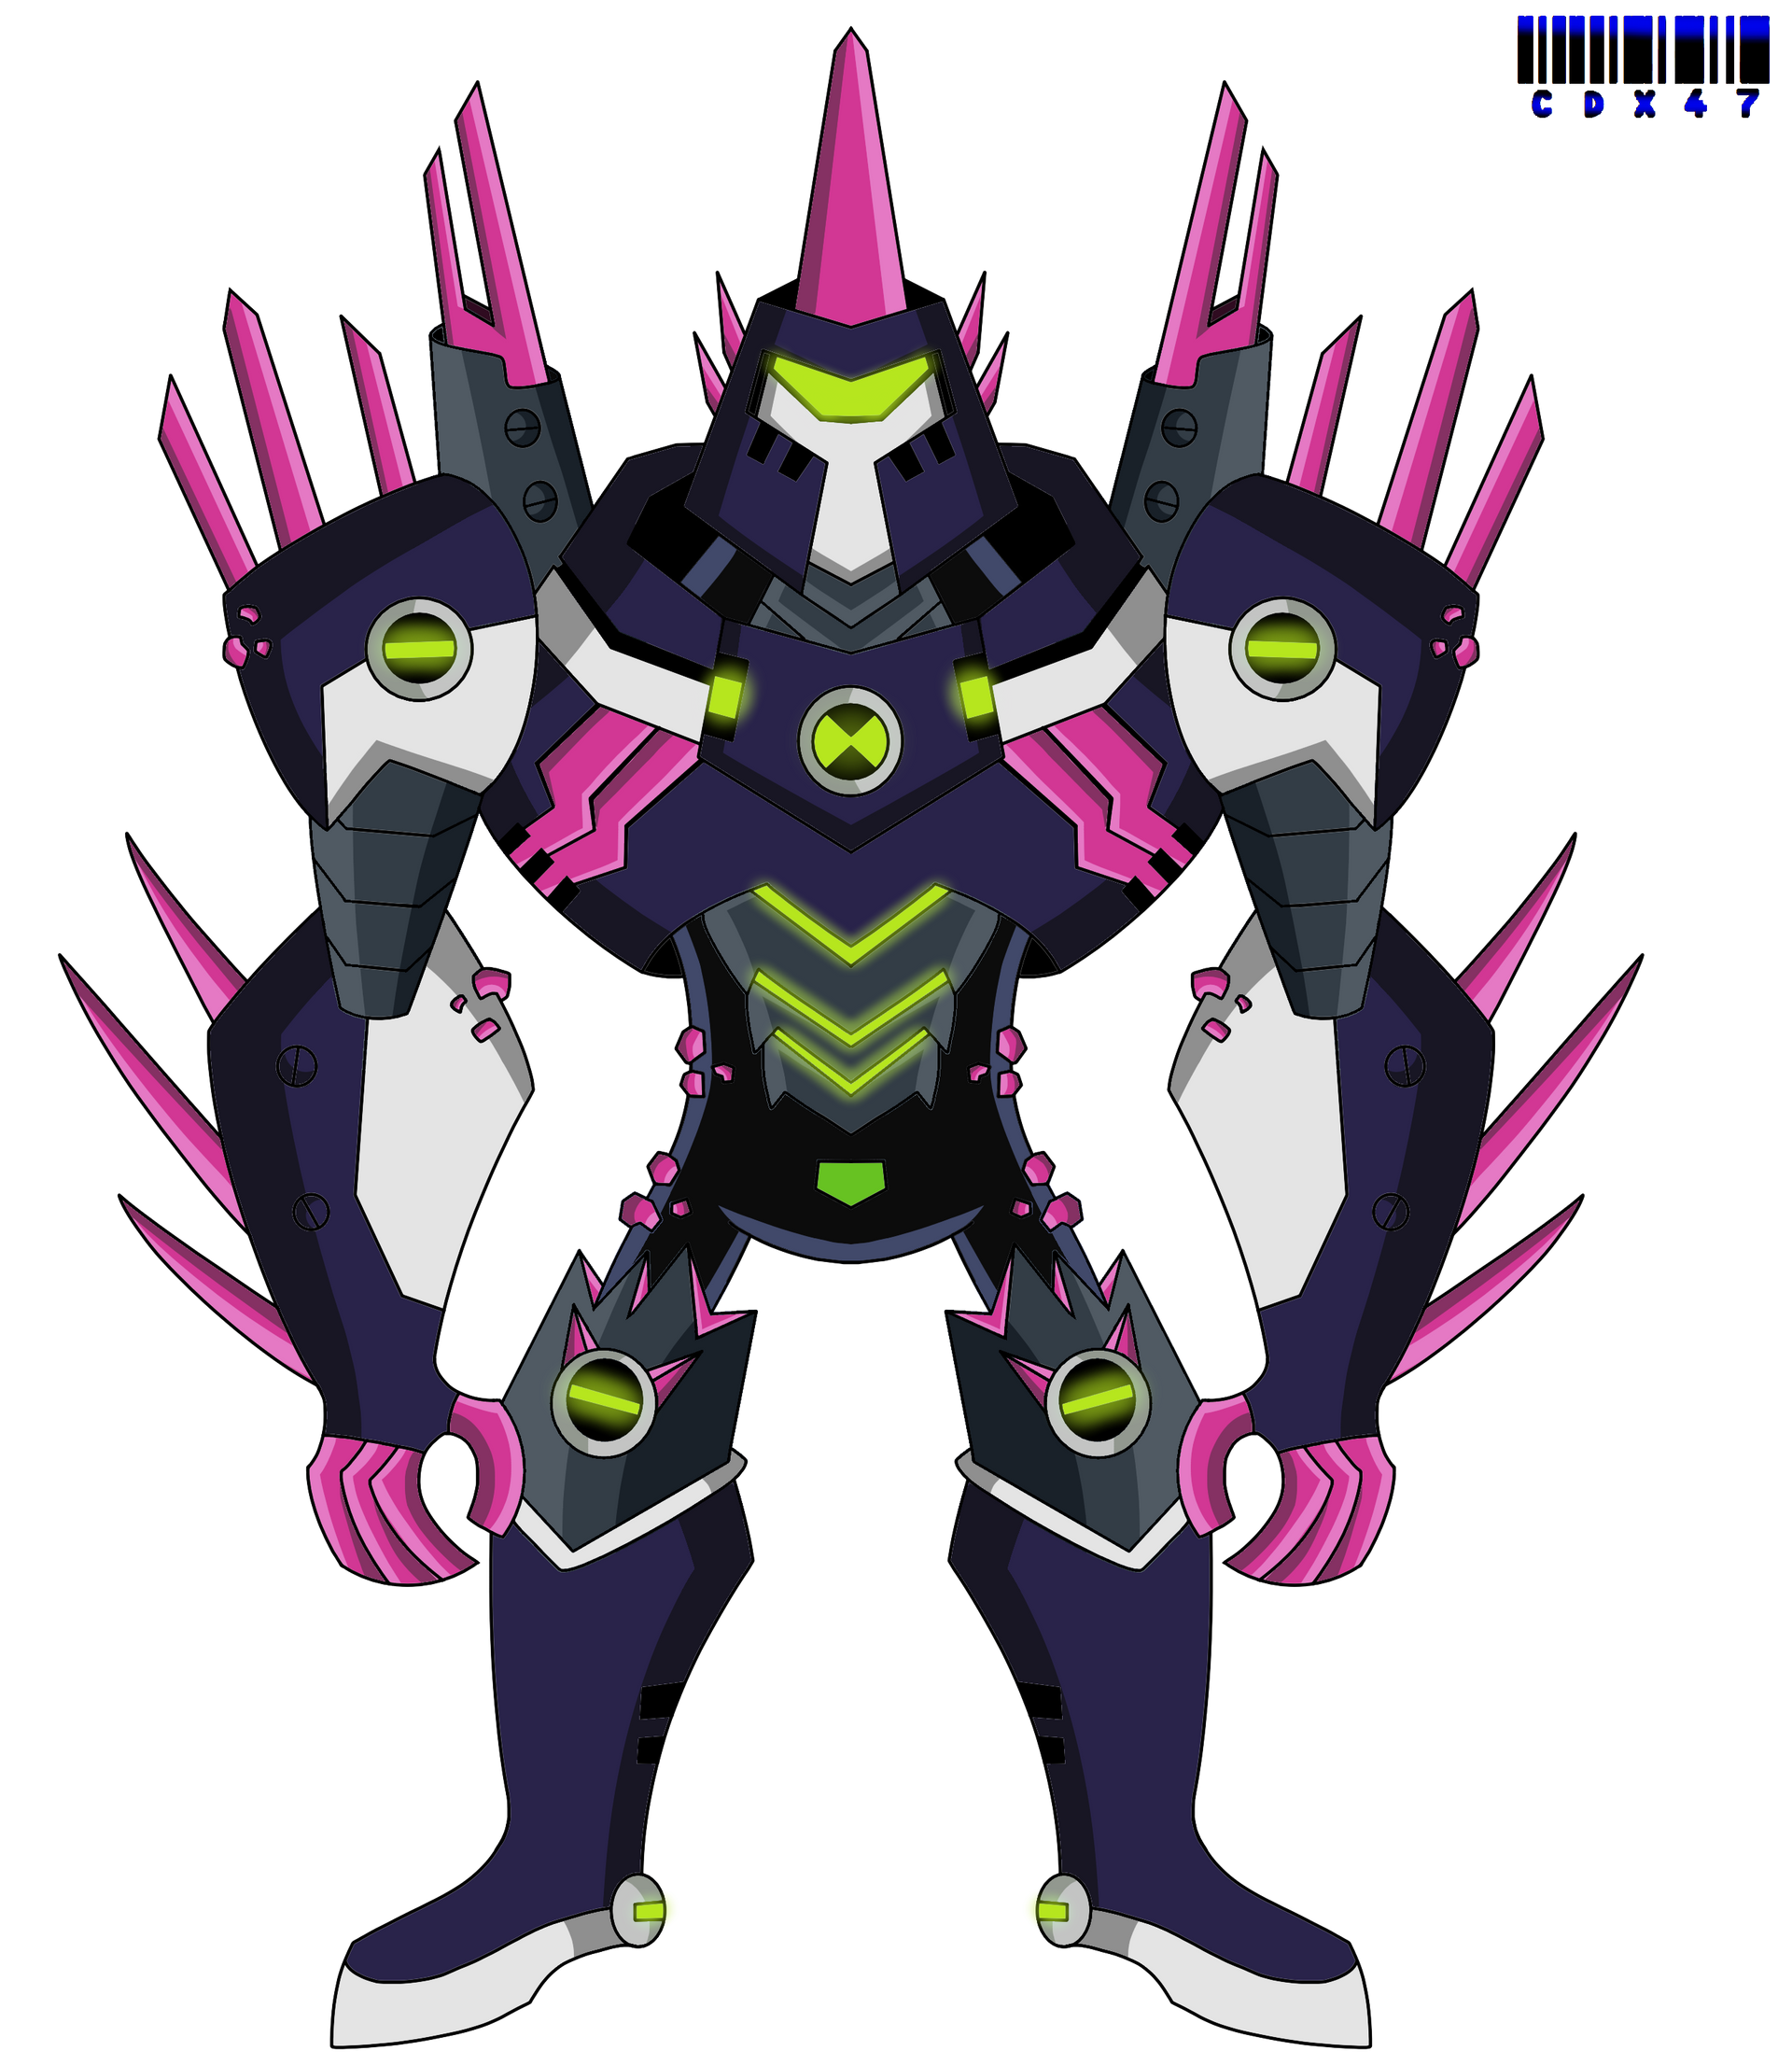 Omni Kix Chromastone By Xxcodex47xx On Deviantart Ben 10 Comics Ben 10 Alien Force Ben 10